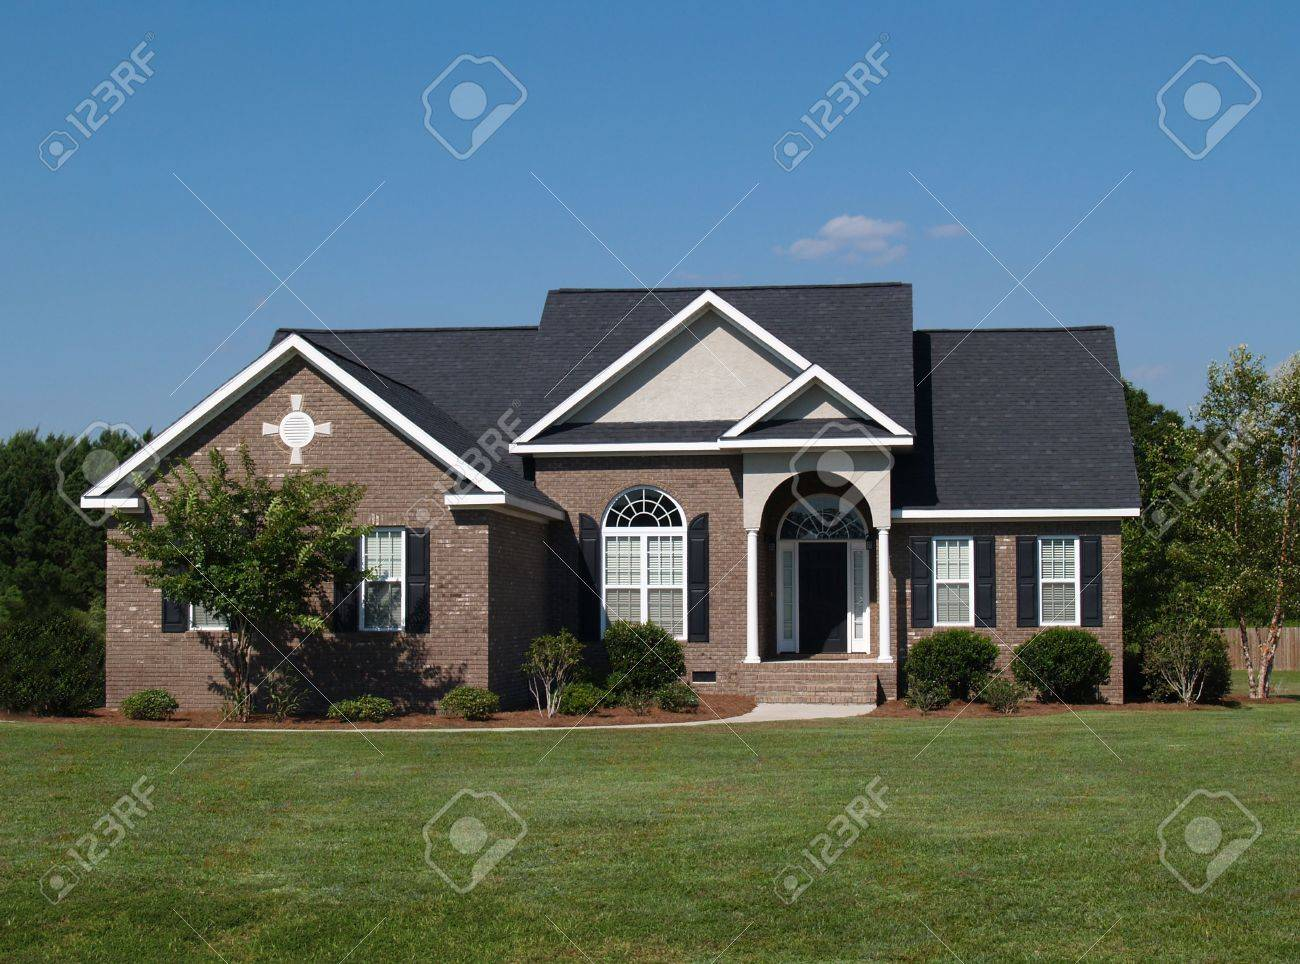 One story new brown brick residential home. - 5580805